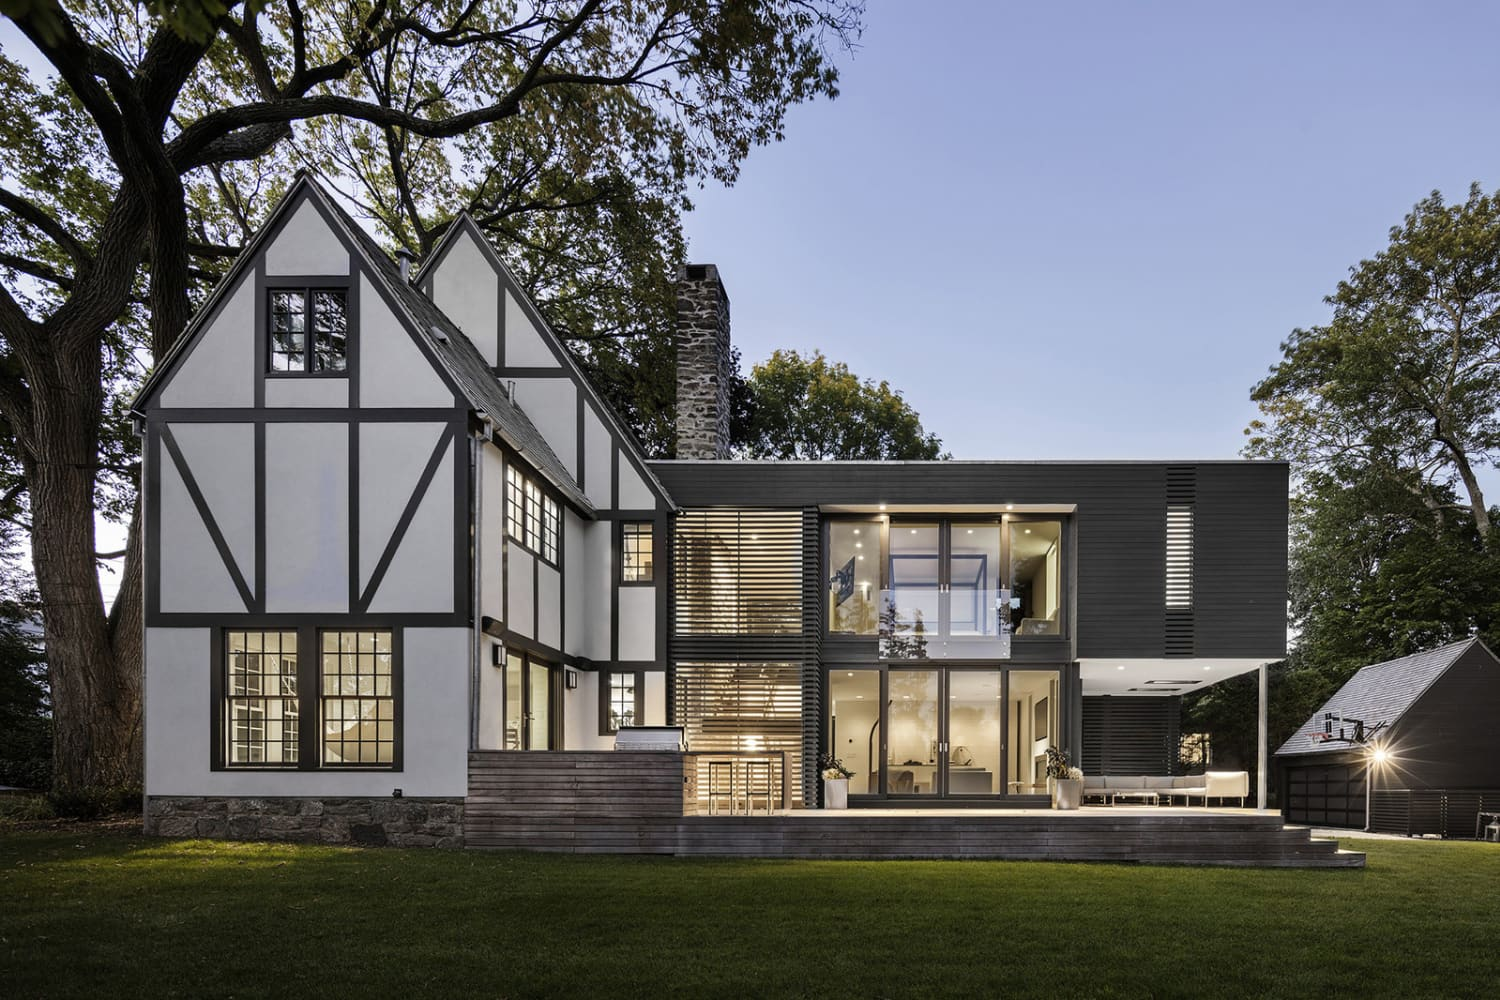 Business in the Front, Party in the Back: 5 Traditional Homes that Got Super-Modern Additions